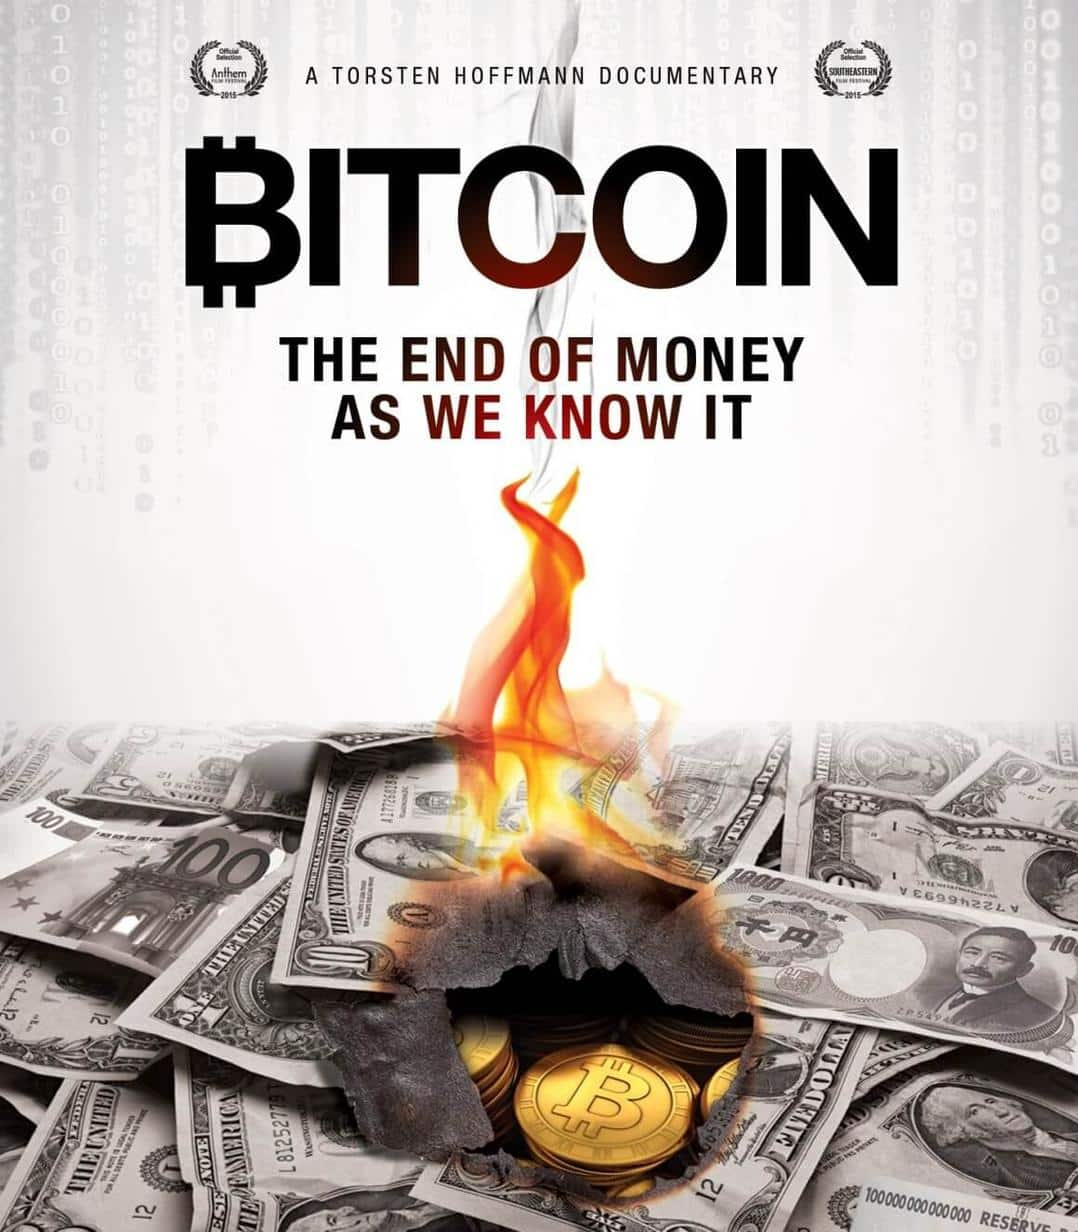 documentary-coming-soon-bitcoin-1160x1326